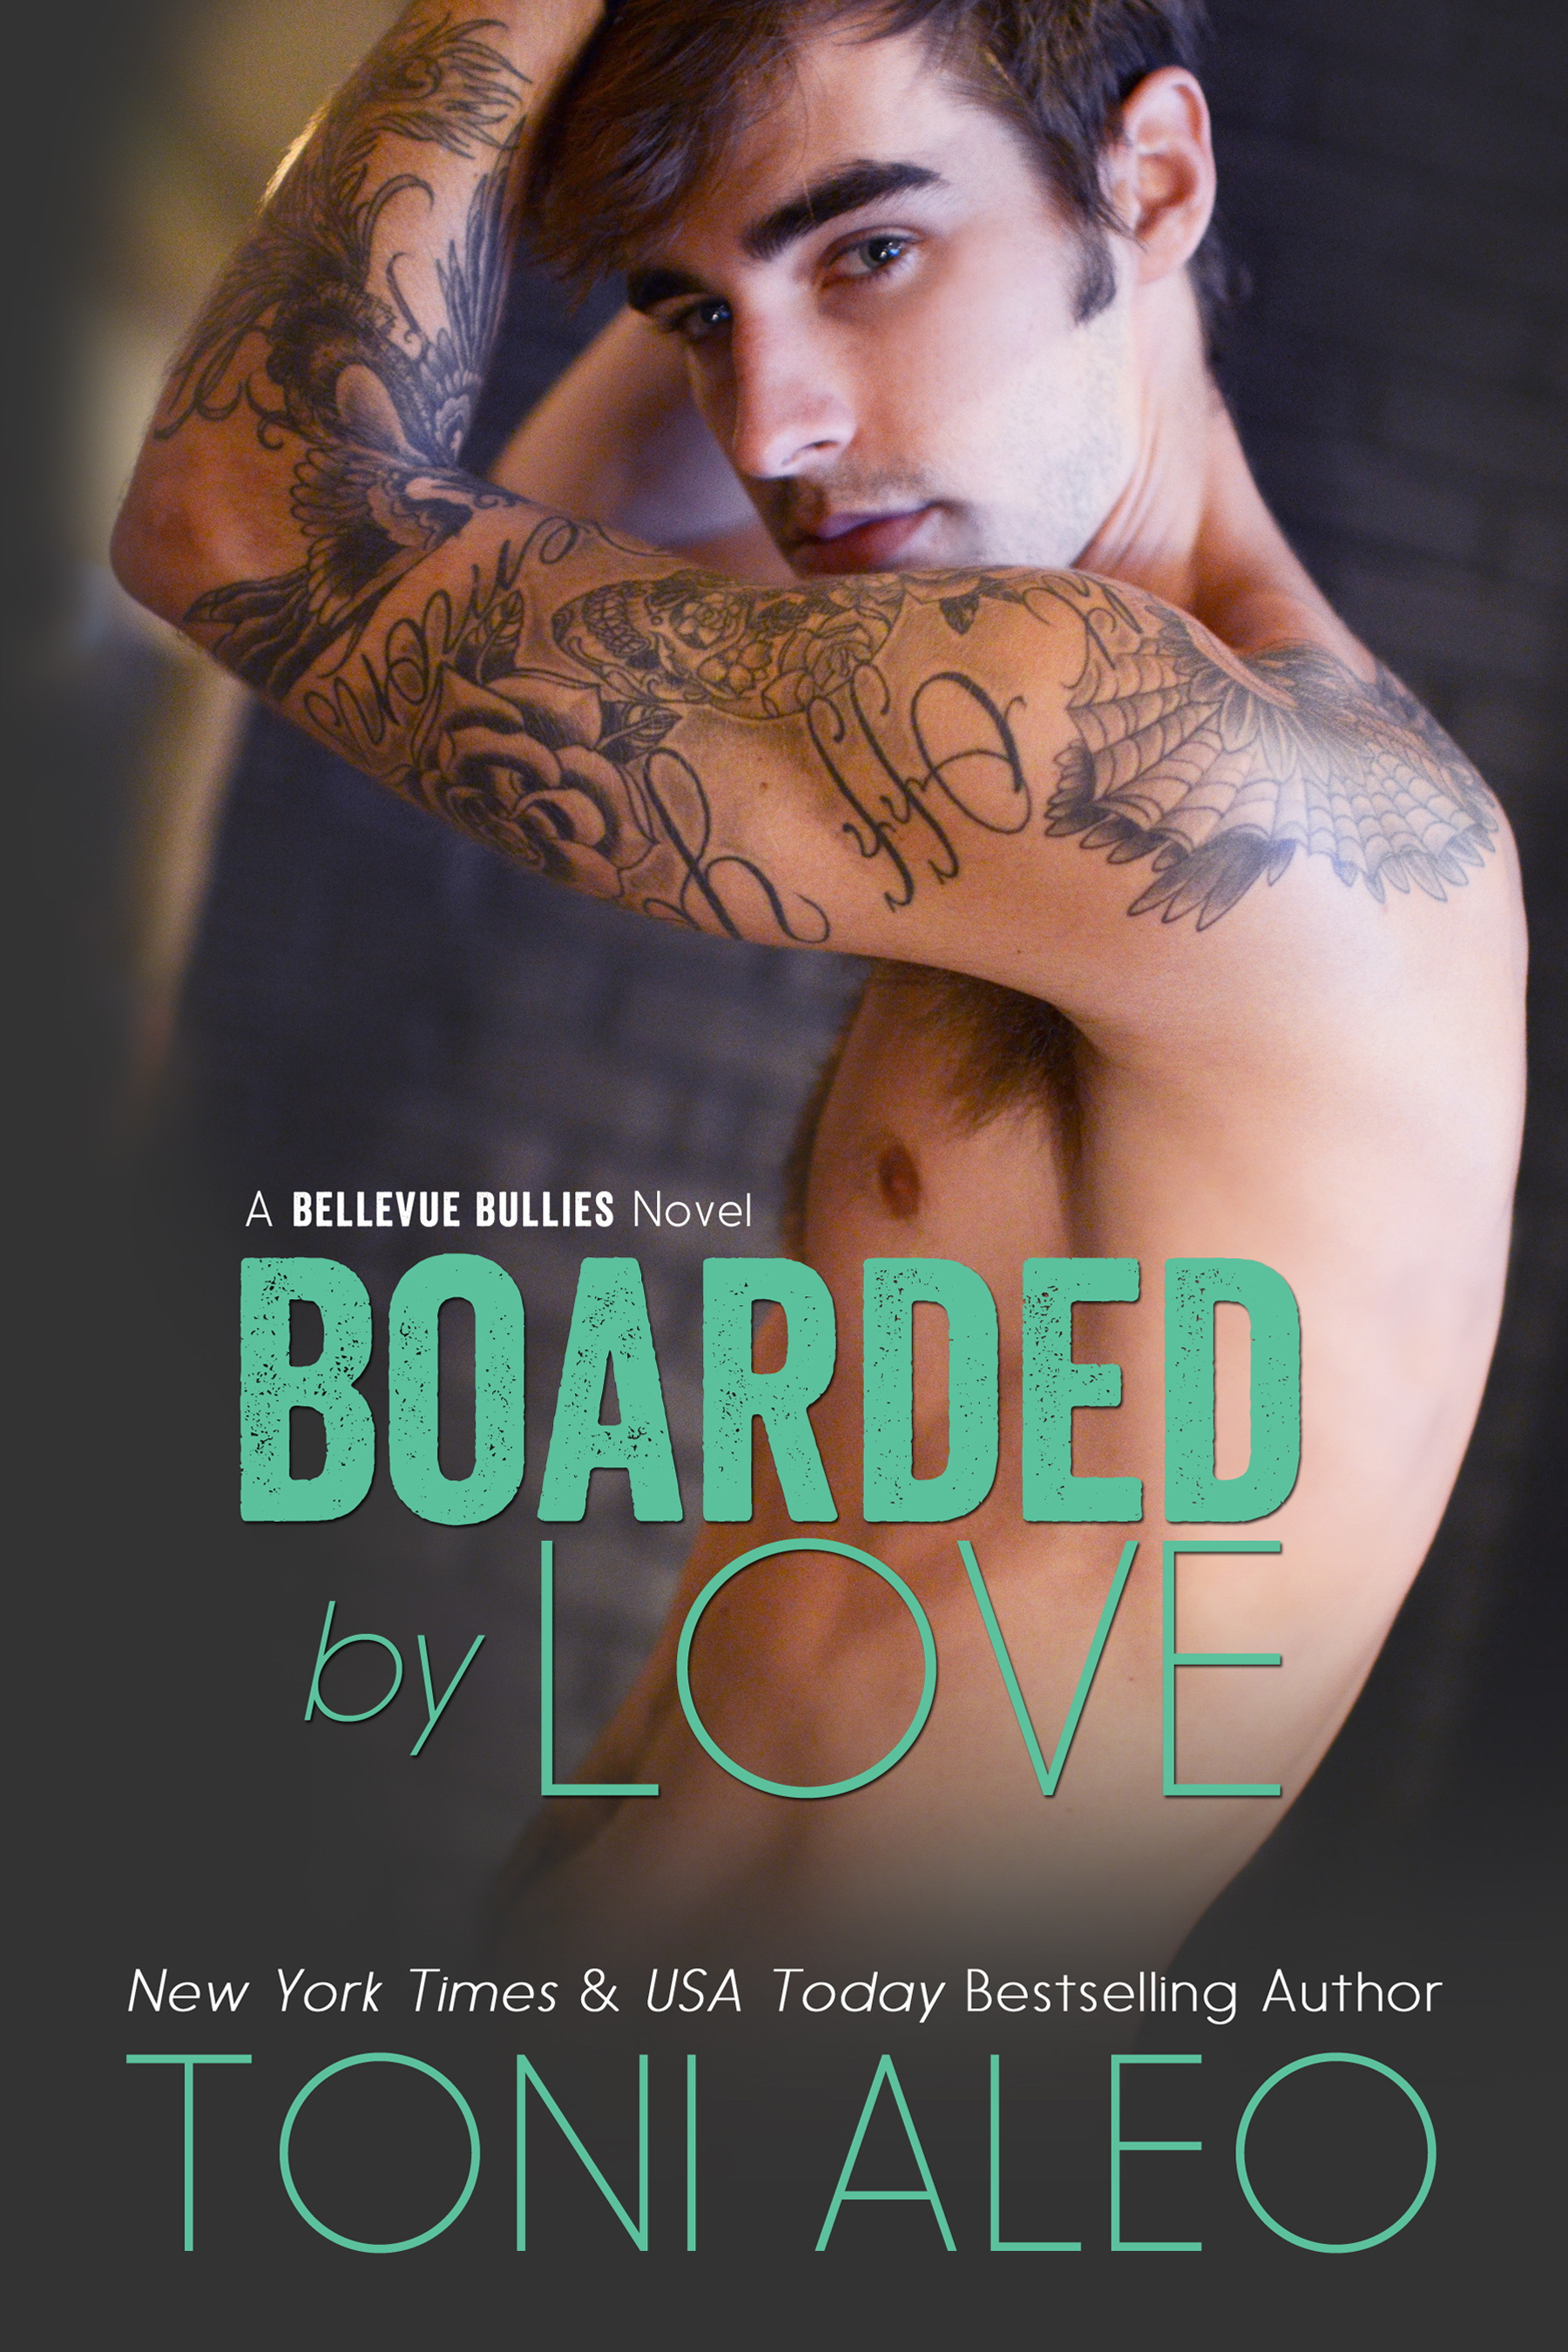 Boarded By Love (Bellevue Bullies #1) by Toni Aleo